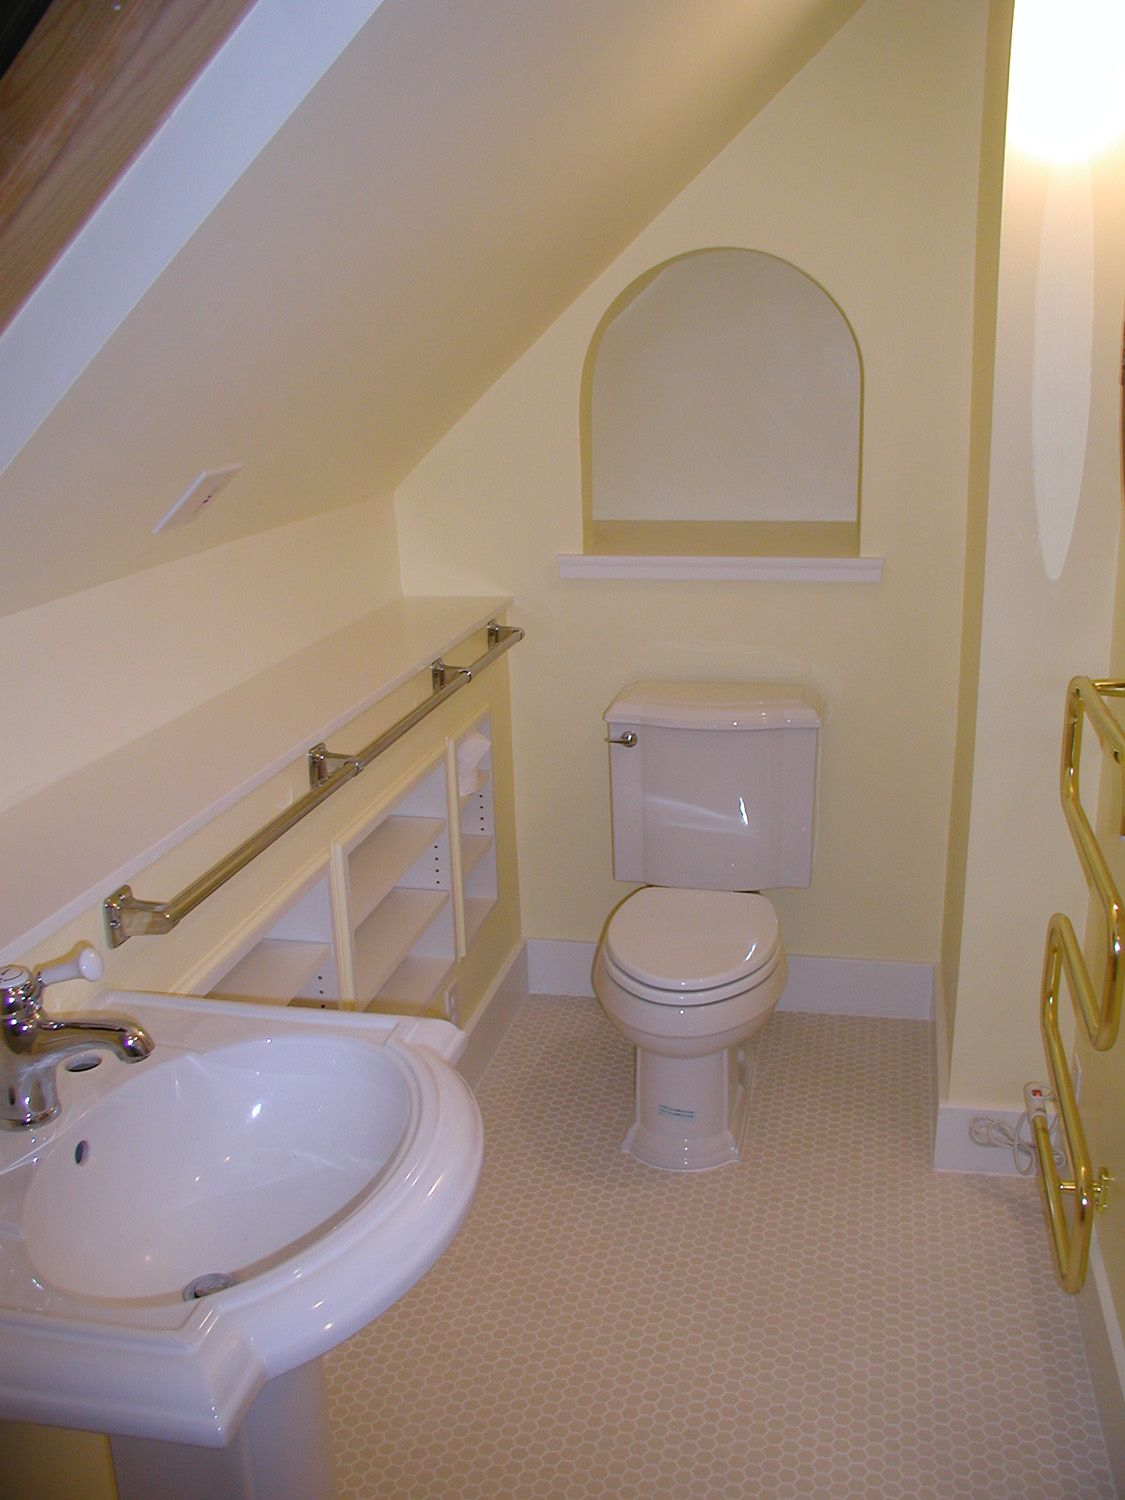 Attic renovation. Bathroom remodels   Bathroom remodeling  Rec rooms and Attic ideas